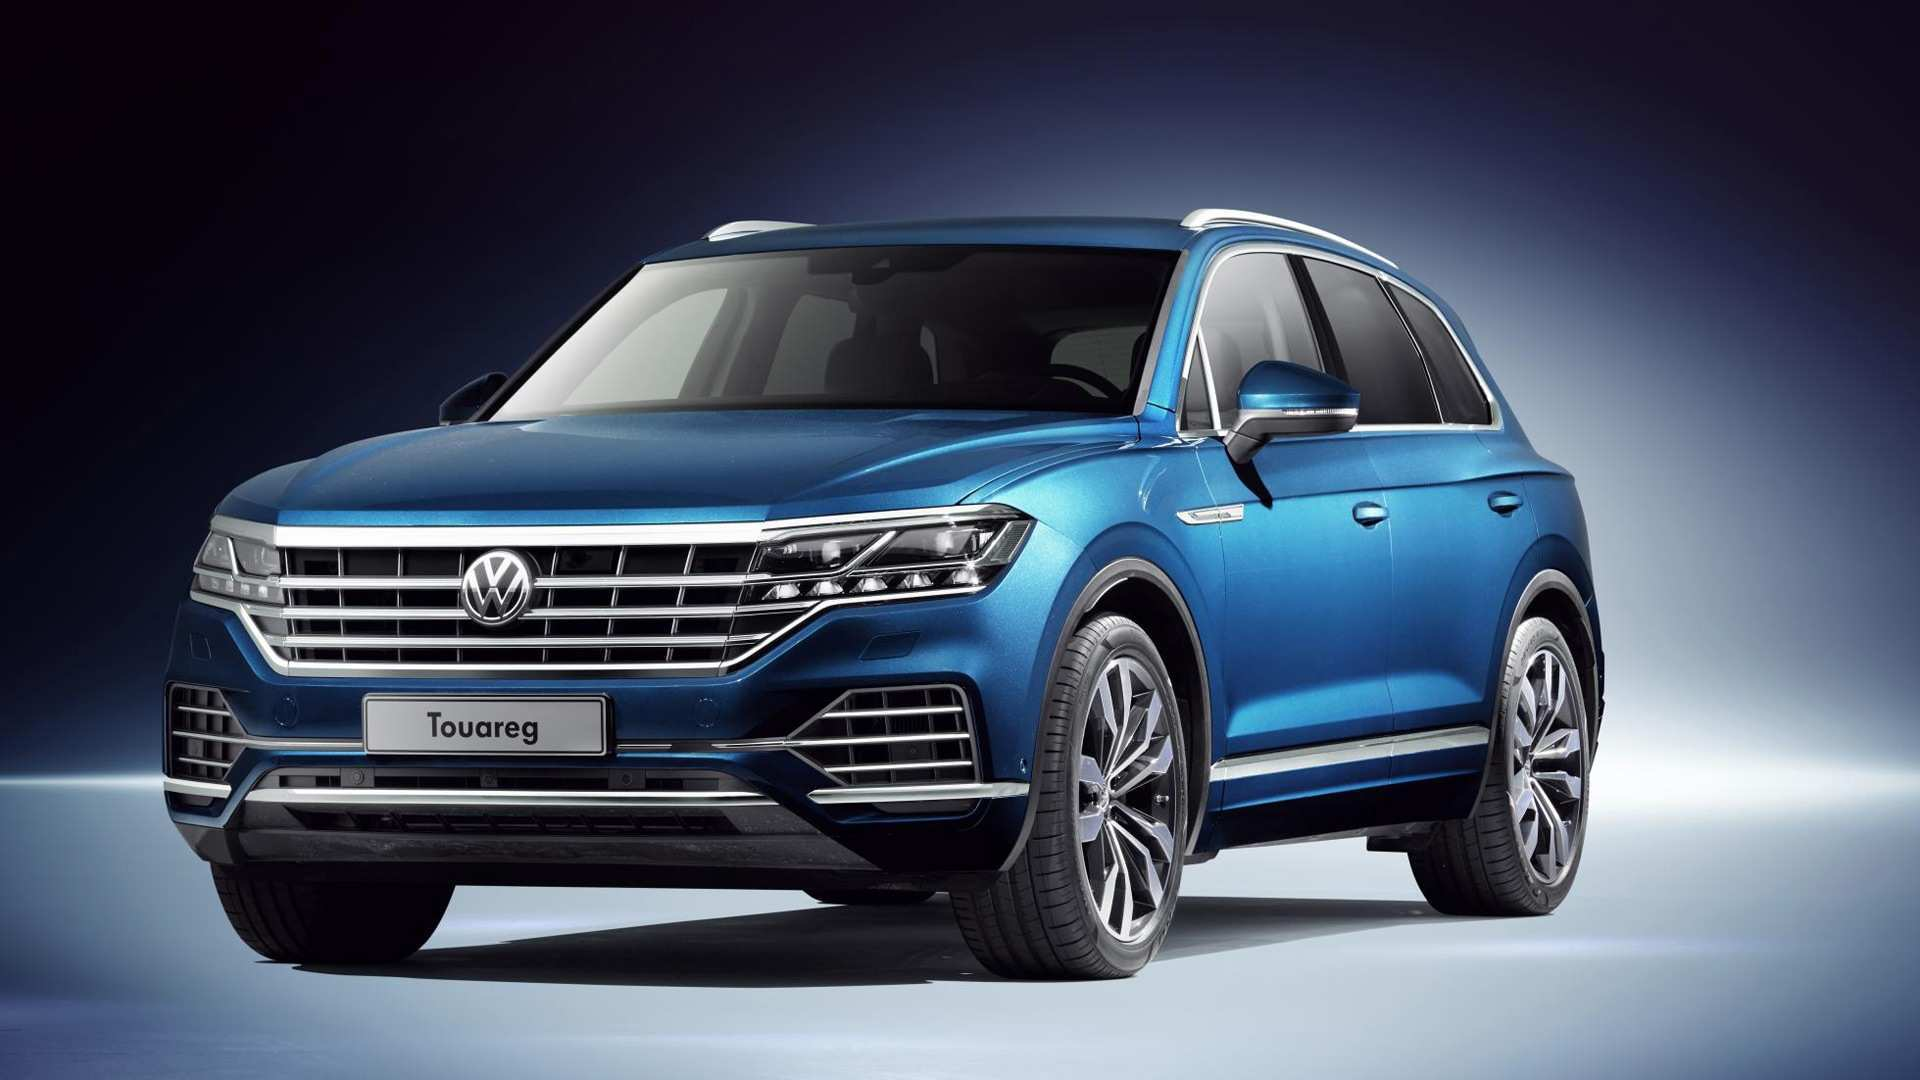 50 The VW Touareg 2020 New Concept Speed Test by VW Touareg 2020 New Concept